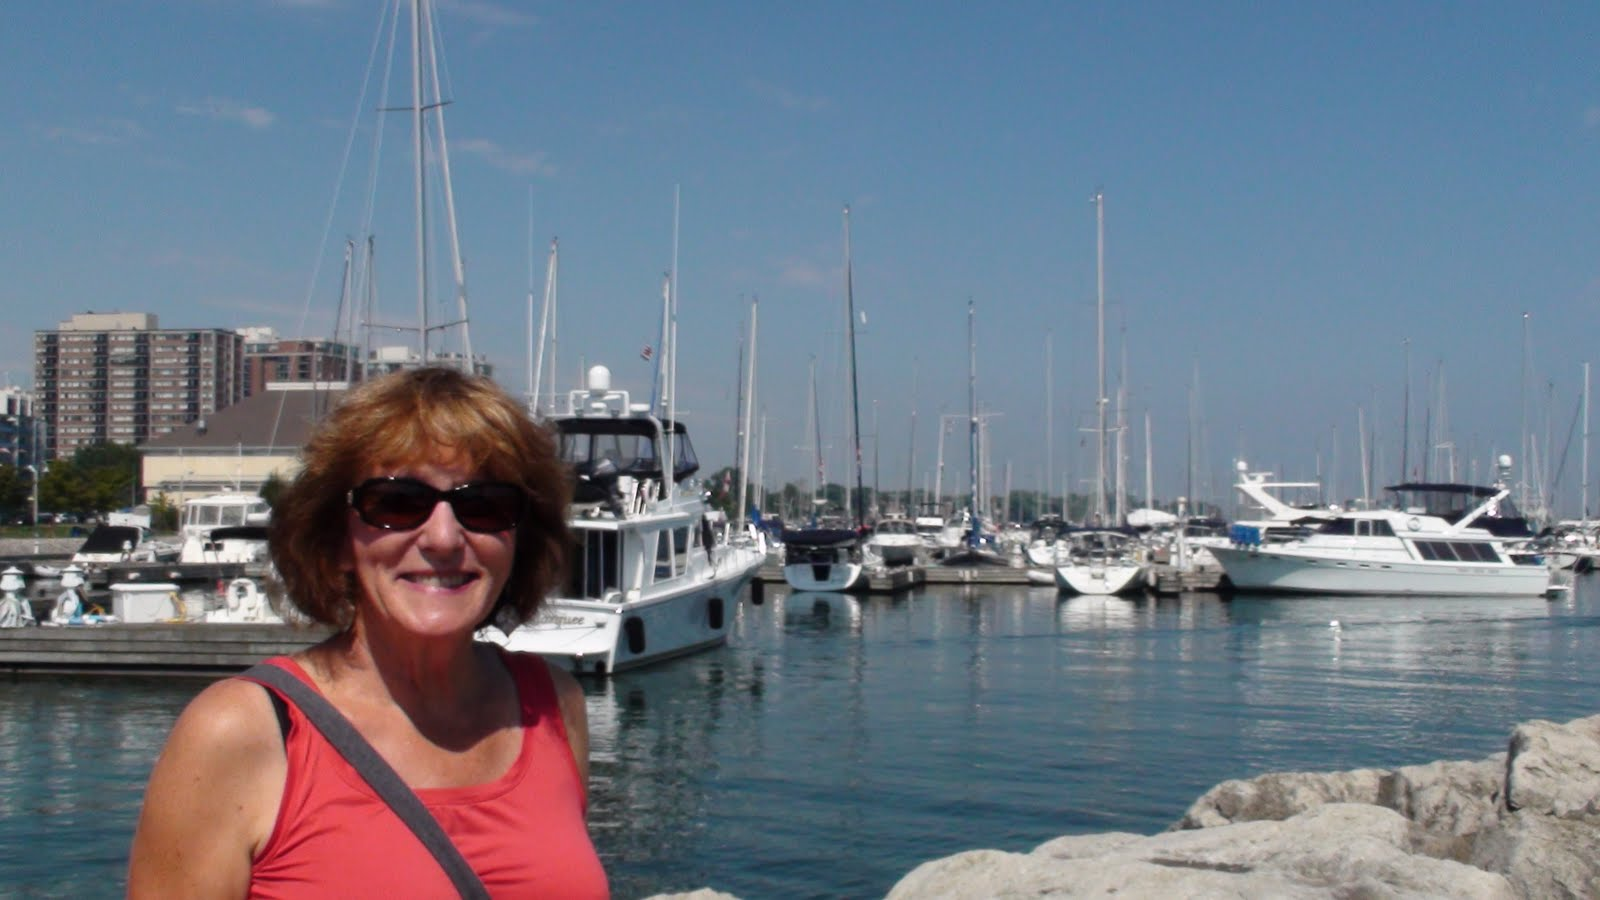 Liz taking in the sights in the harbour.